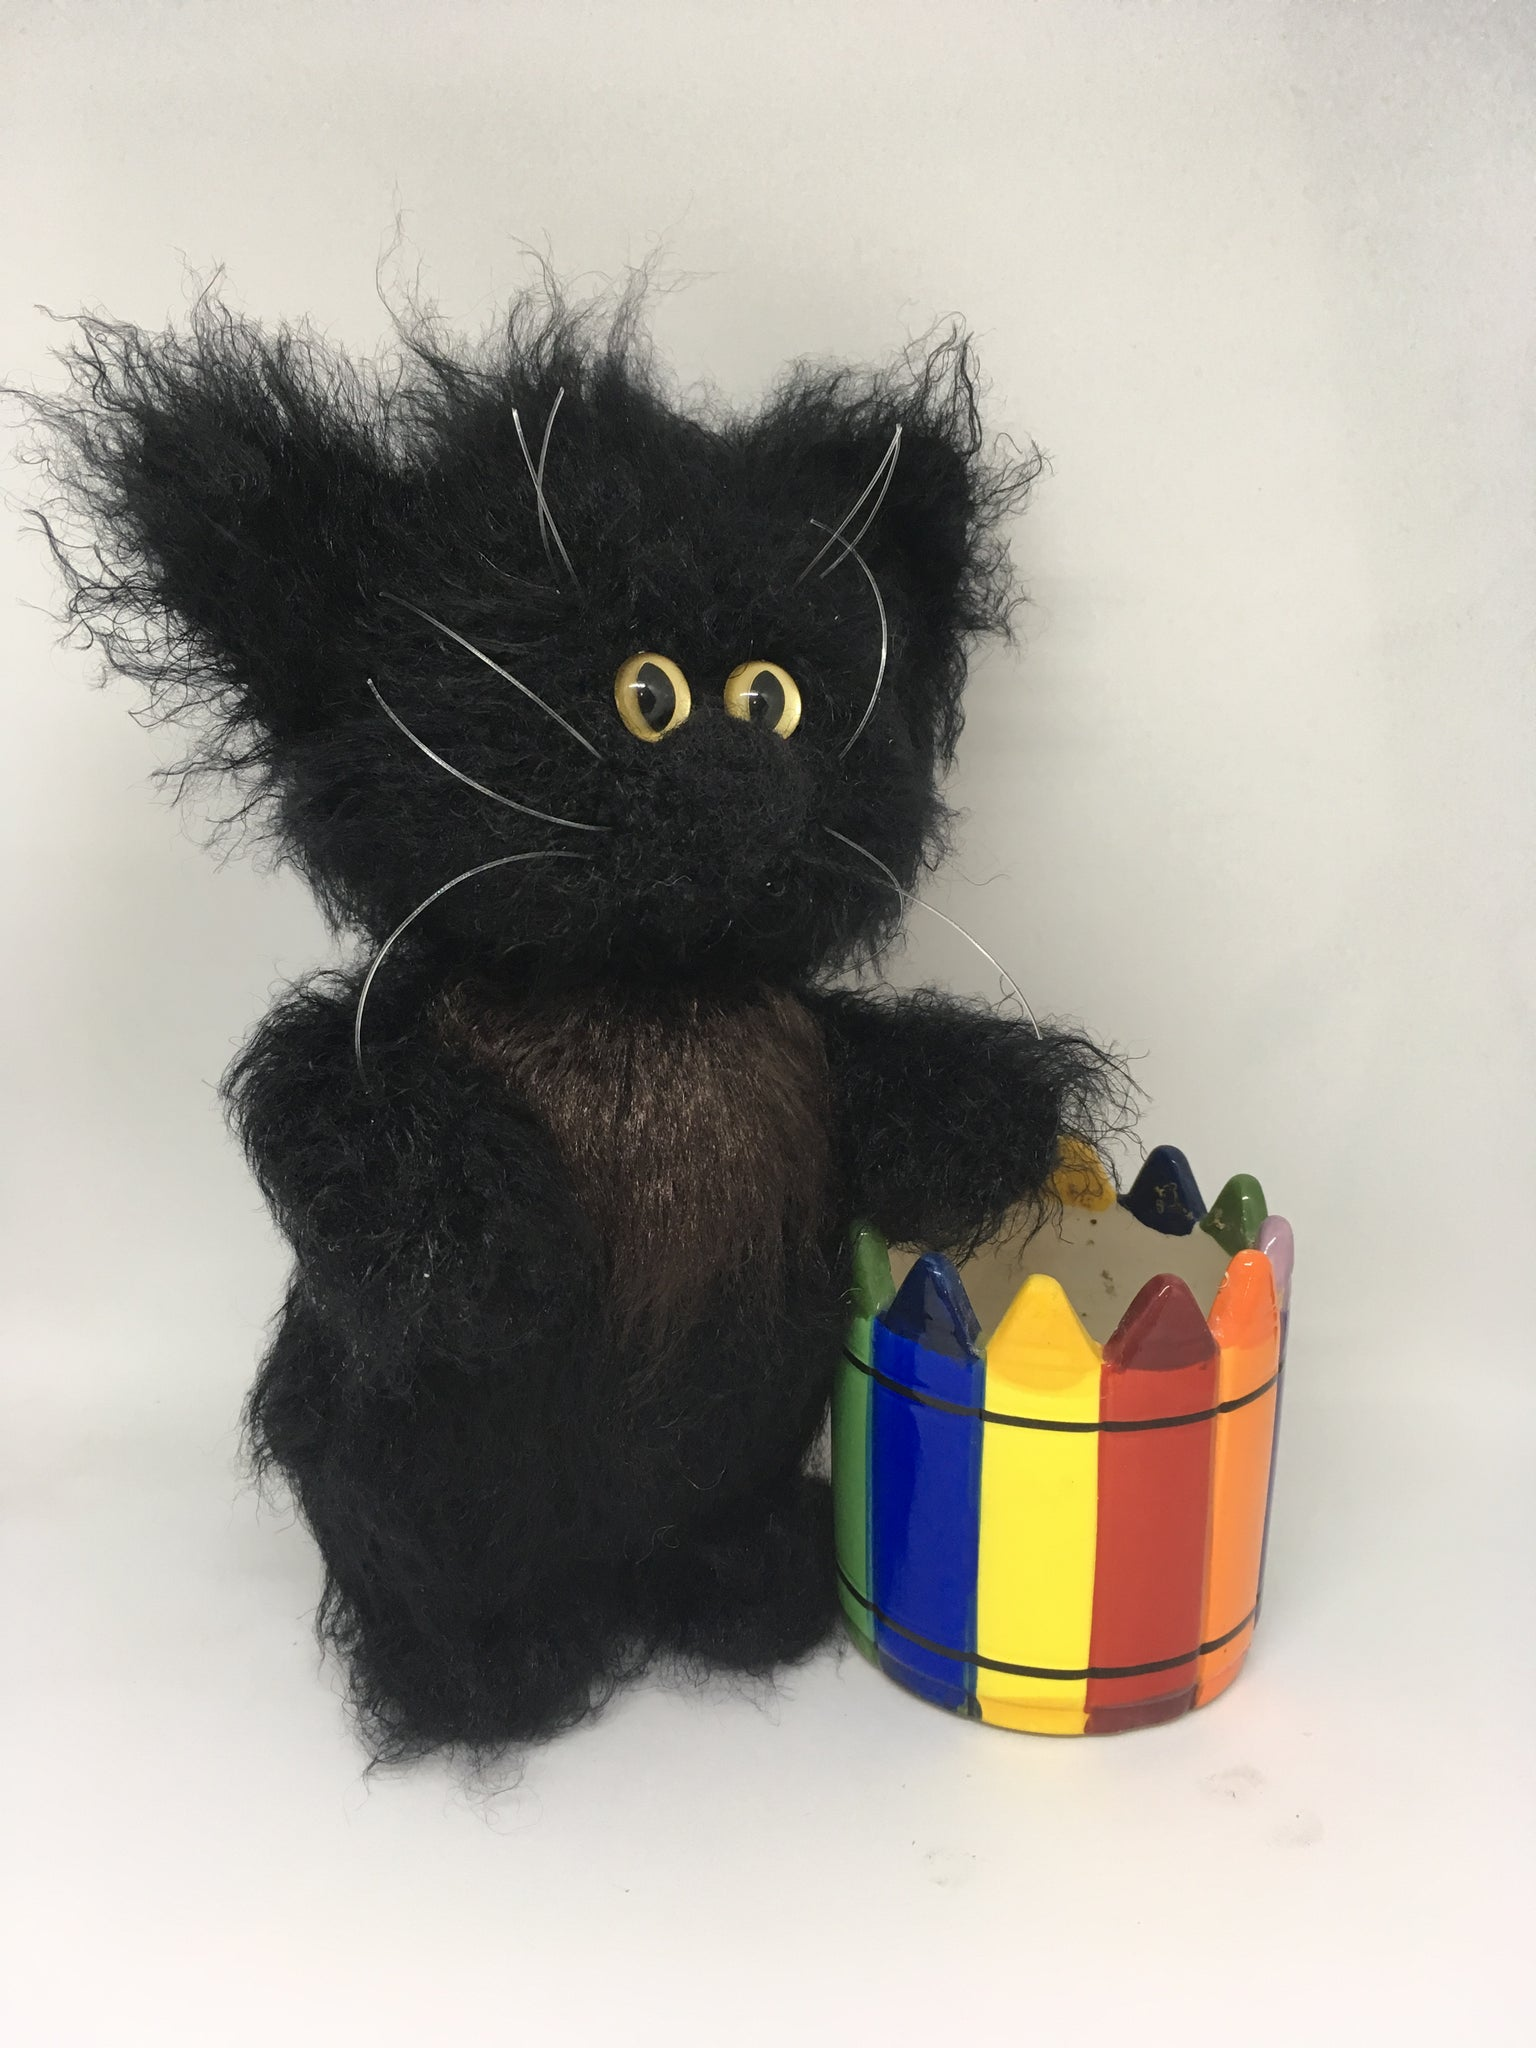 Crochet Amigurumi Black Cat - Free Patterns | Stricken und häkeln ... | 2048x1536